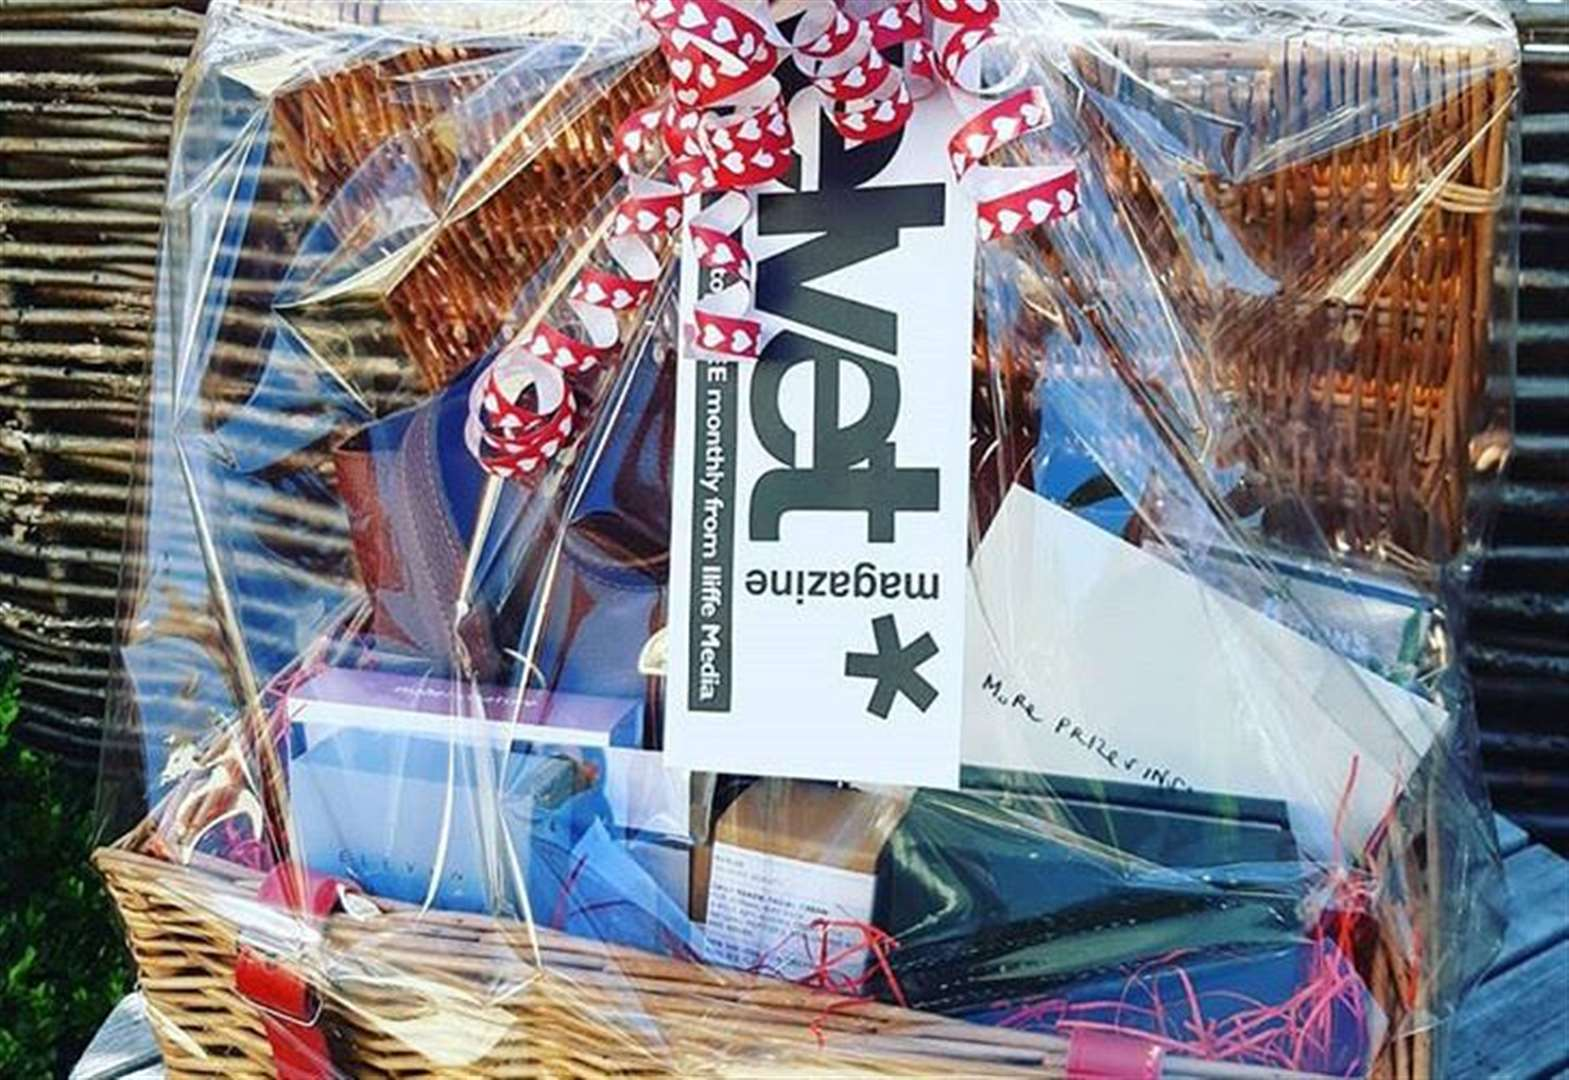 Autumn Ladies' Day: This *magical* hamper could be going home with you today